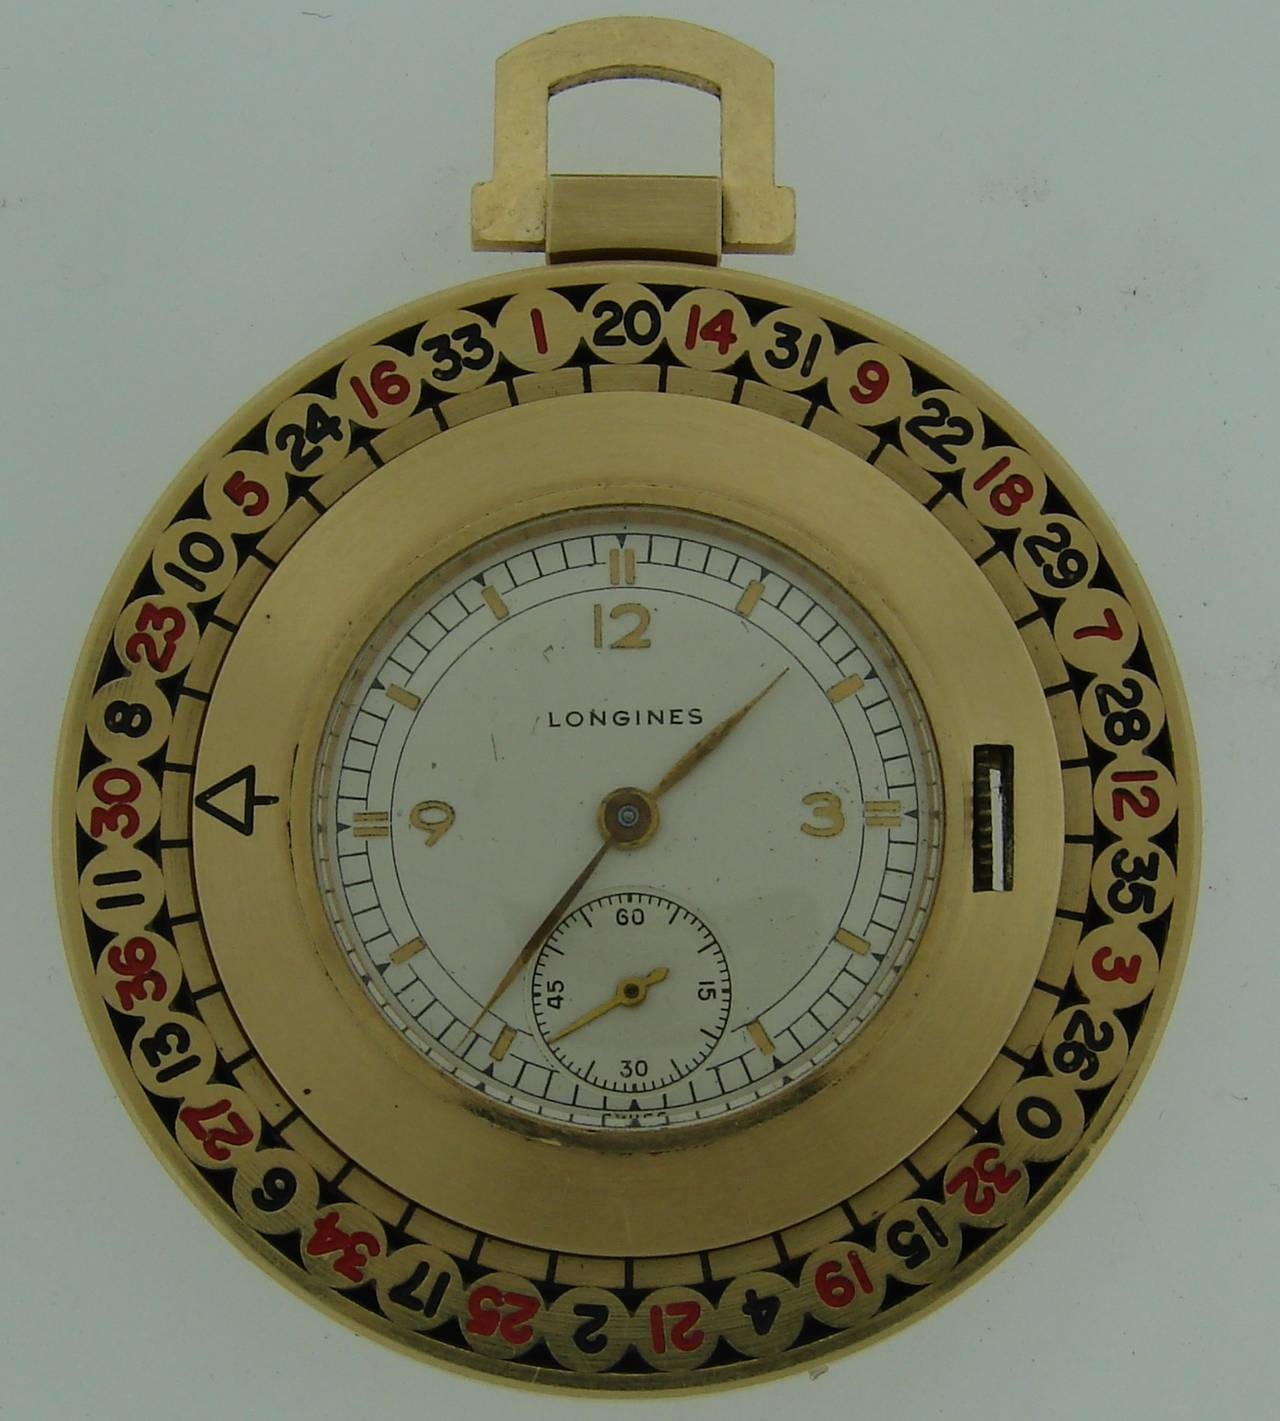 Have Las Vegas in your pocket! - stunning pocket watch made as a roulette. The outer circle with numbers is turning! You can gamble anywhere anytime!   The watch is made of 14K (tested) yellow gold and enamel. The watch is 1-5/8